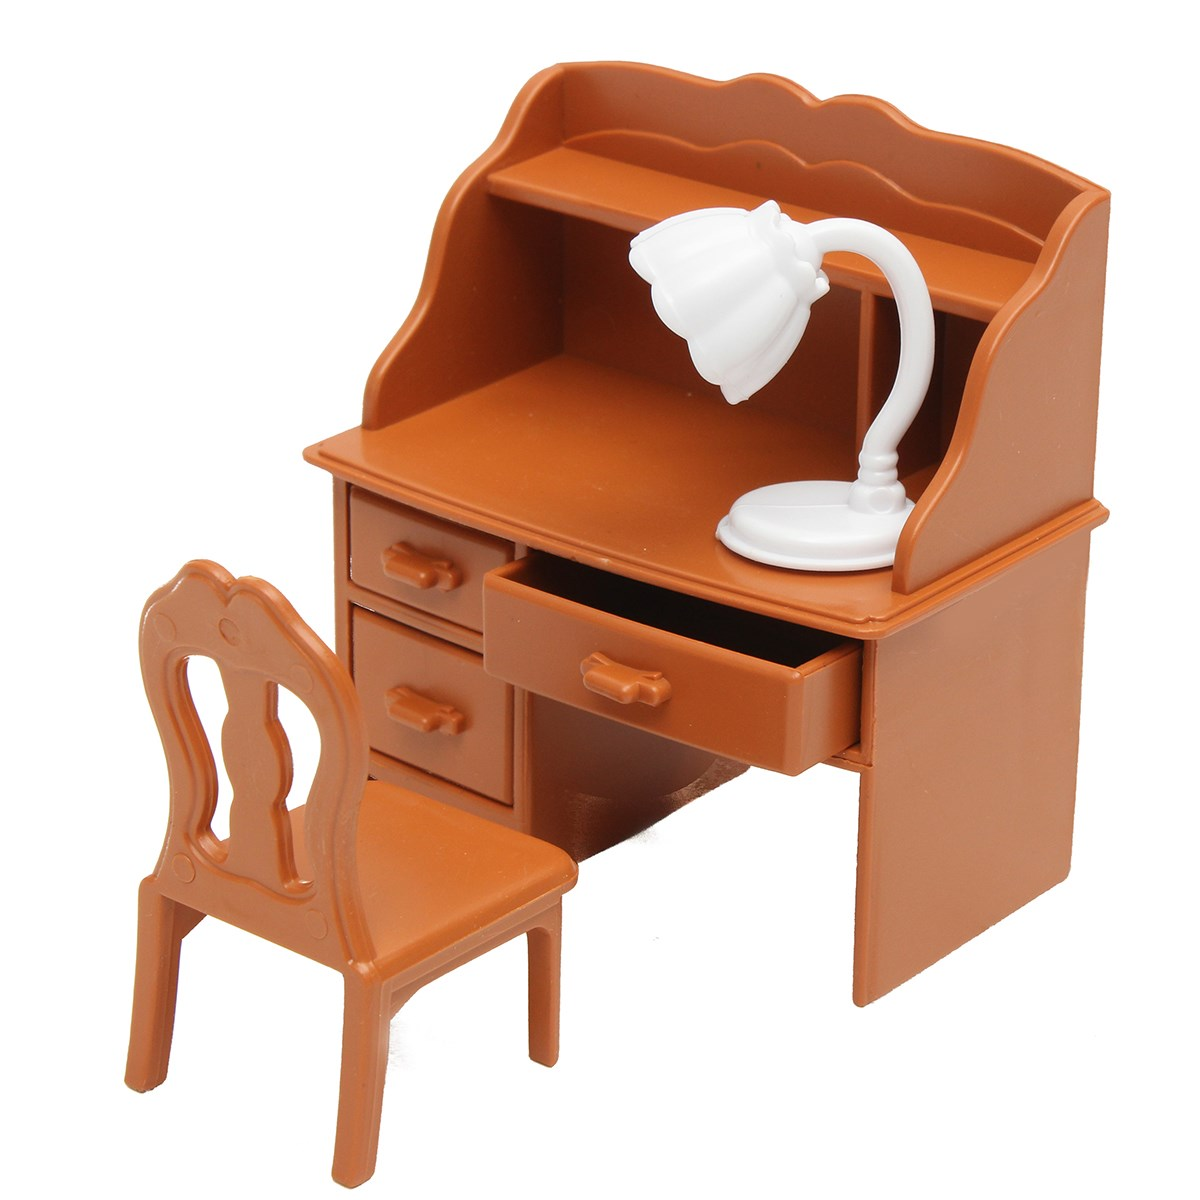 Miniature-Living-Room-Dressing-Table-Furniture-Sets-For-Mini-Children-DollHouse-Home-Decor-Kids-Toy-Doll-House-Toys-Gift-3